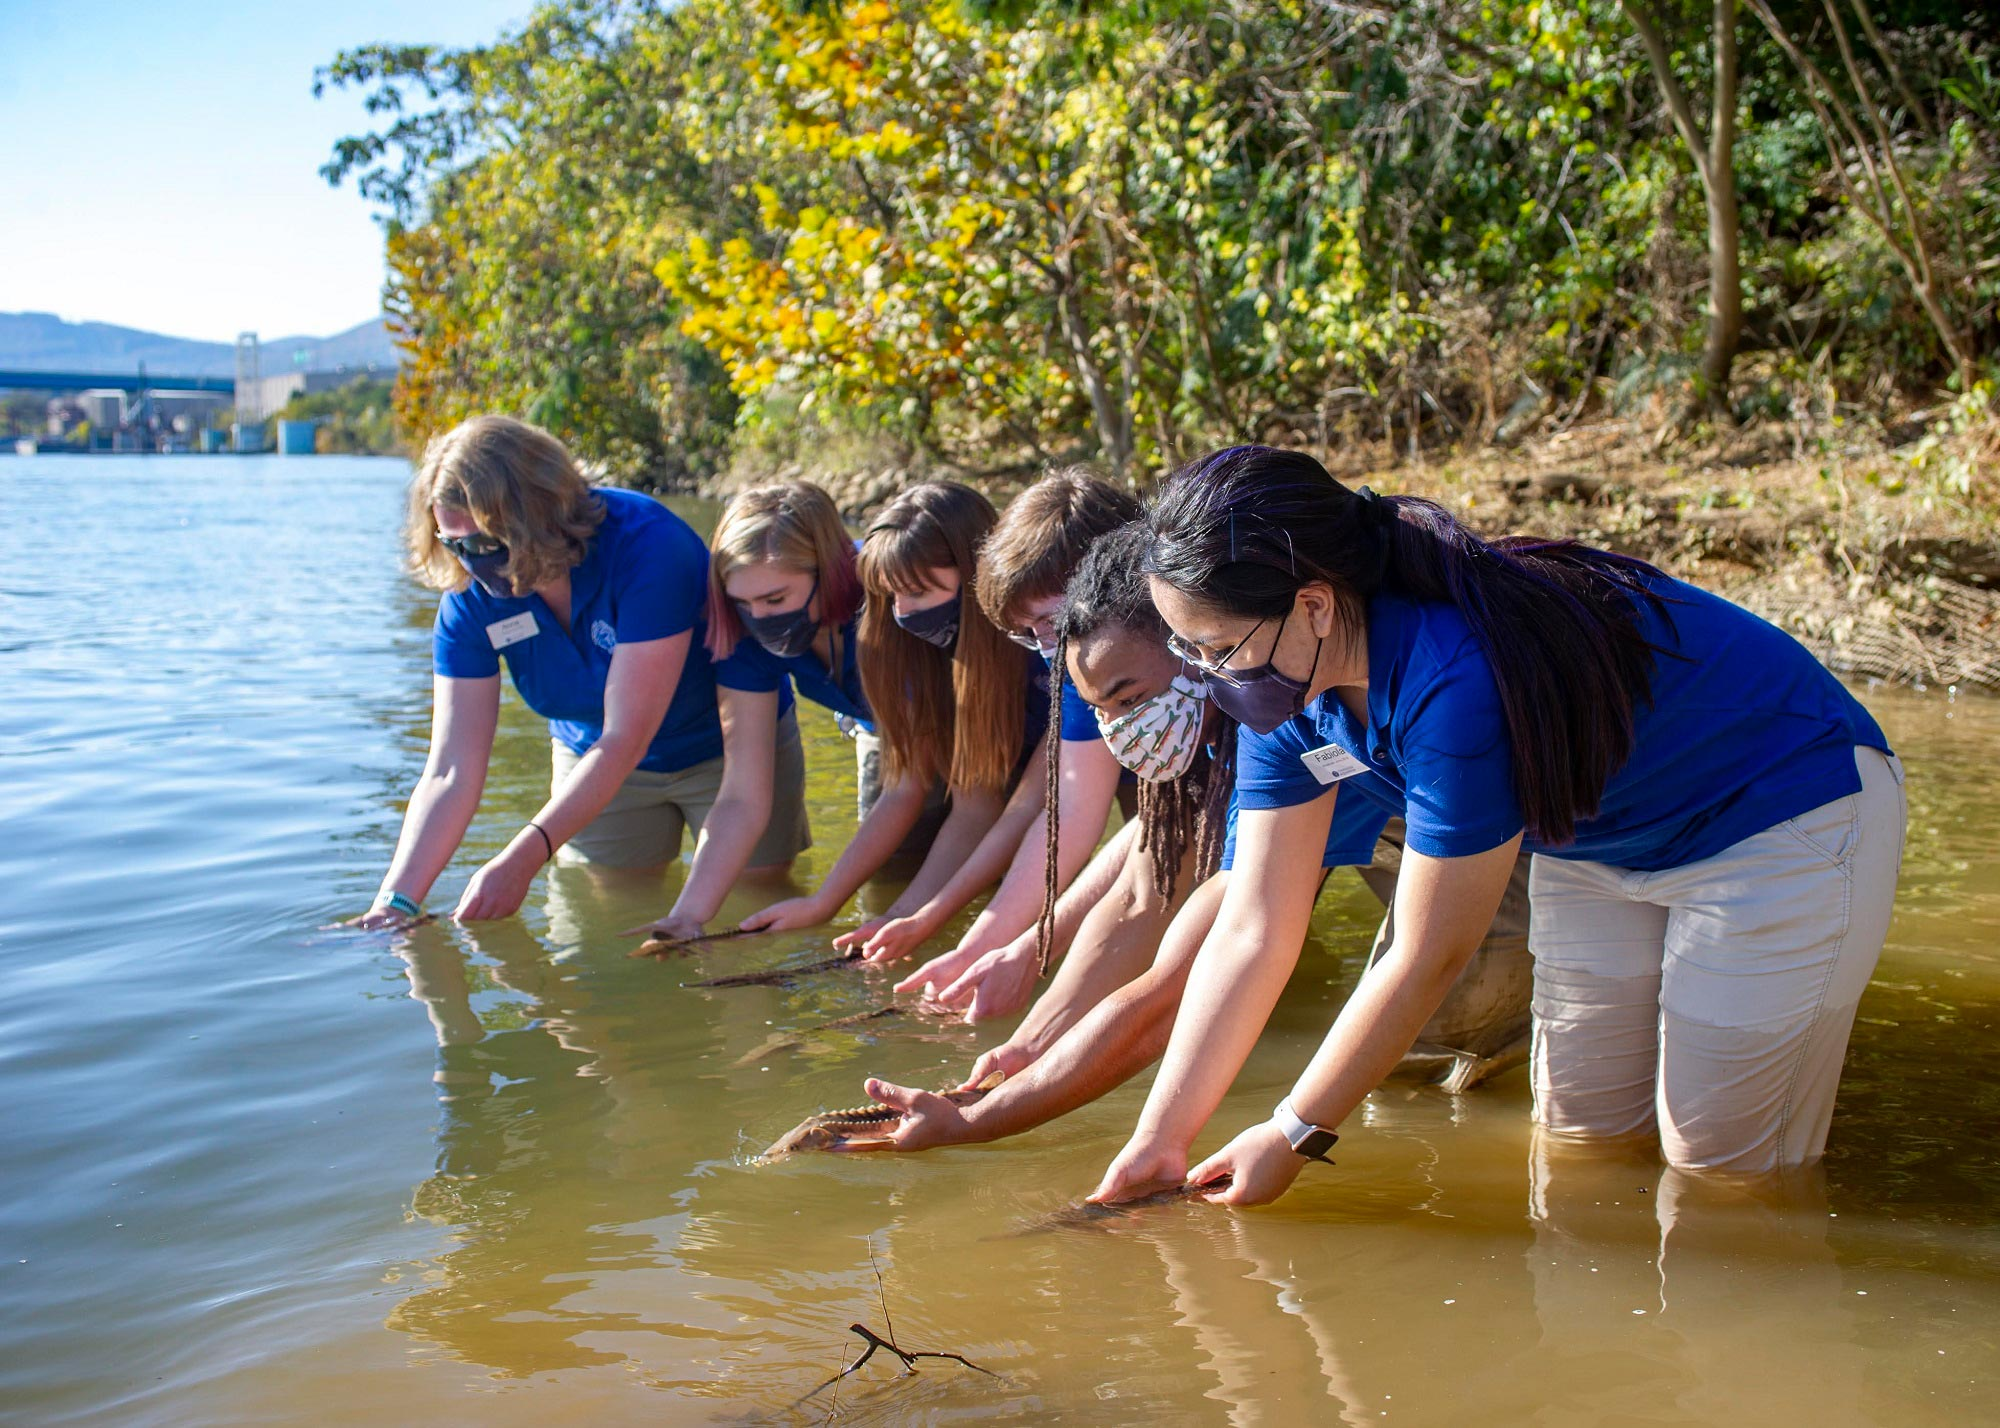 Tennessee Aquarium Conservation Institute staff release juvenile Lake Sturgeon into the Tennessee River